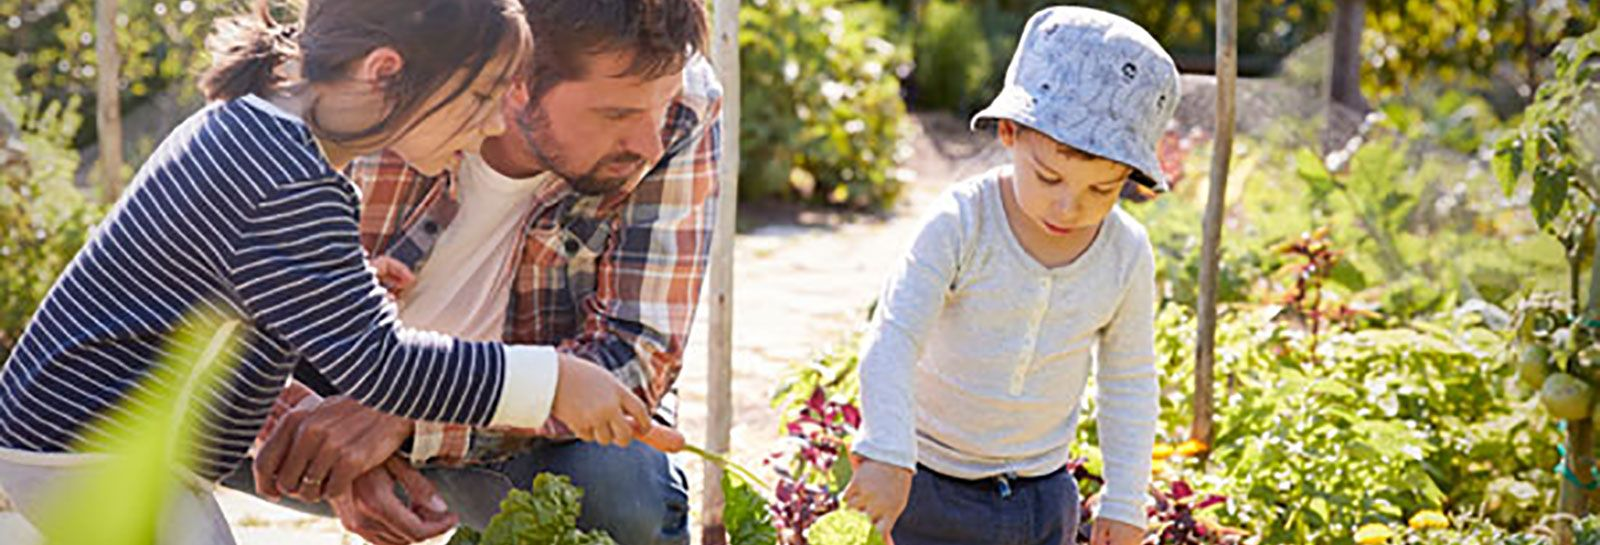 A man and two children digging up vegetables banner image